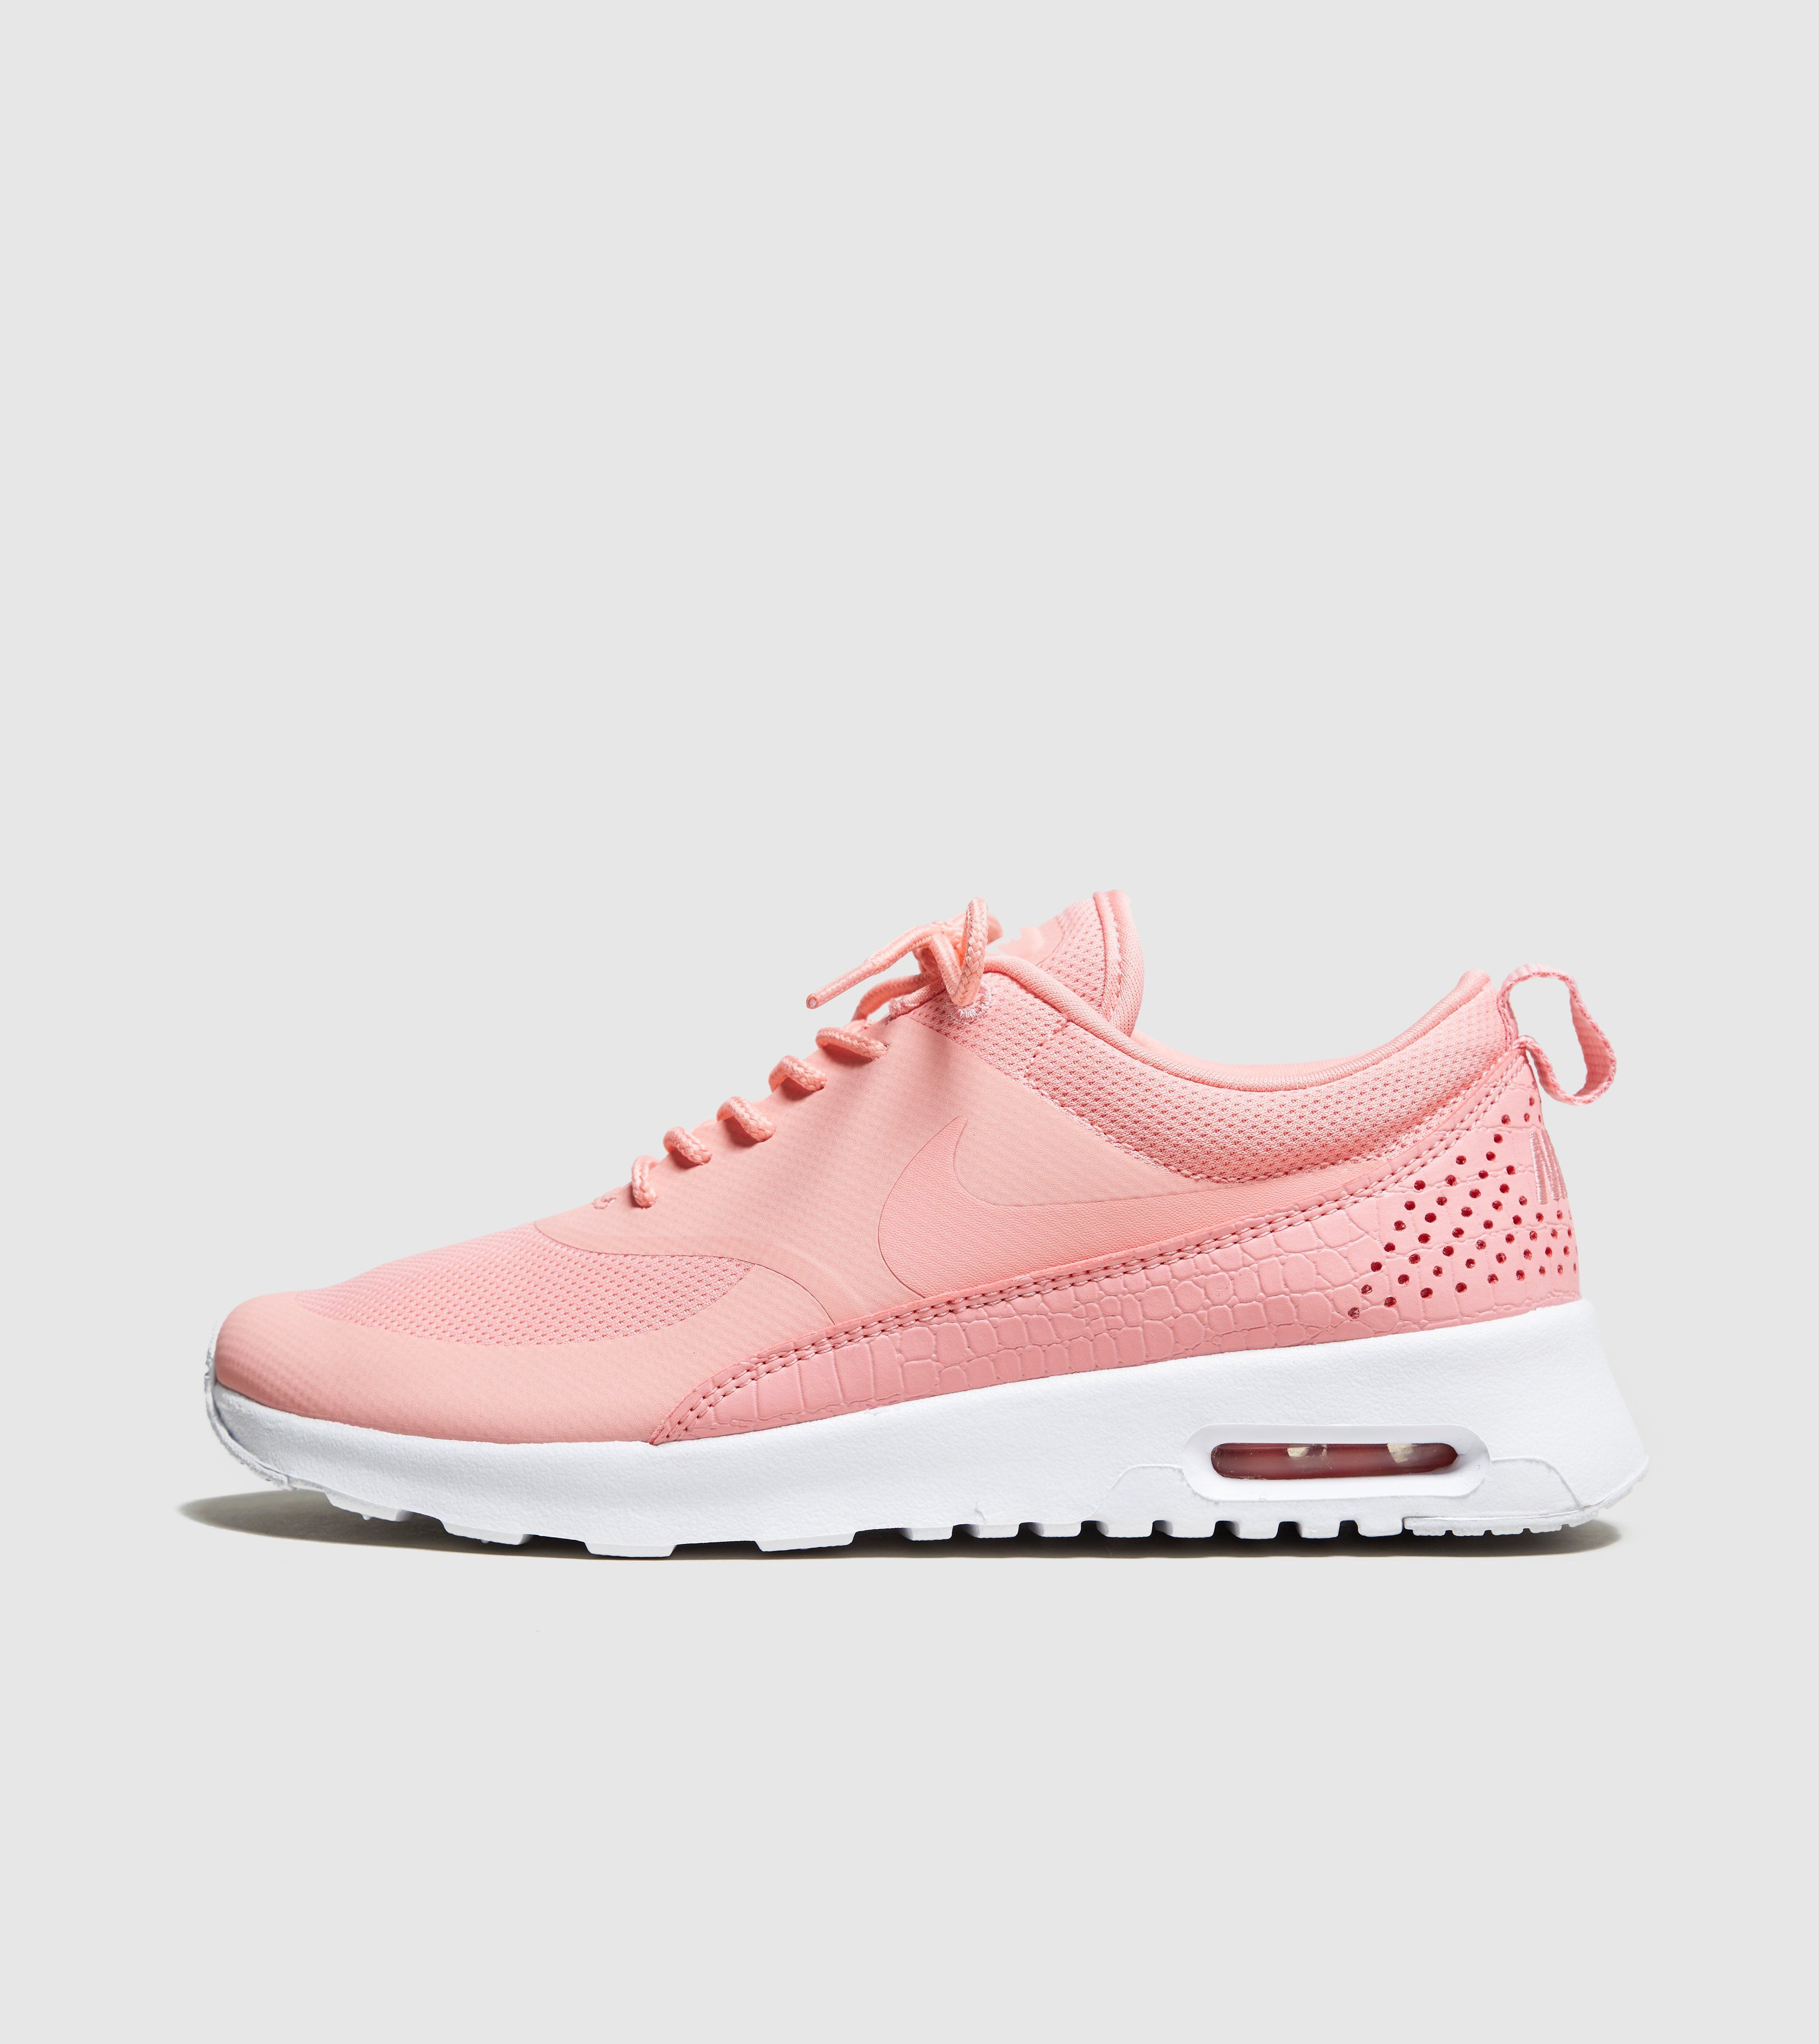 Nike Trainers Womens Nike Air Max Thea Essential Pink